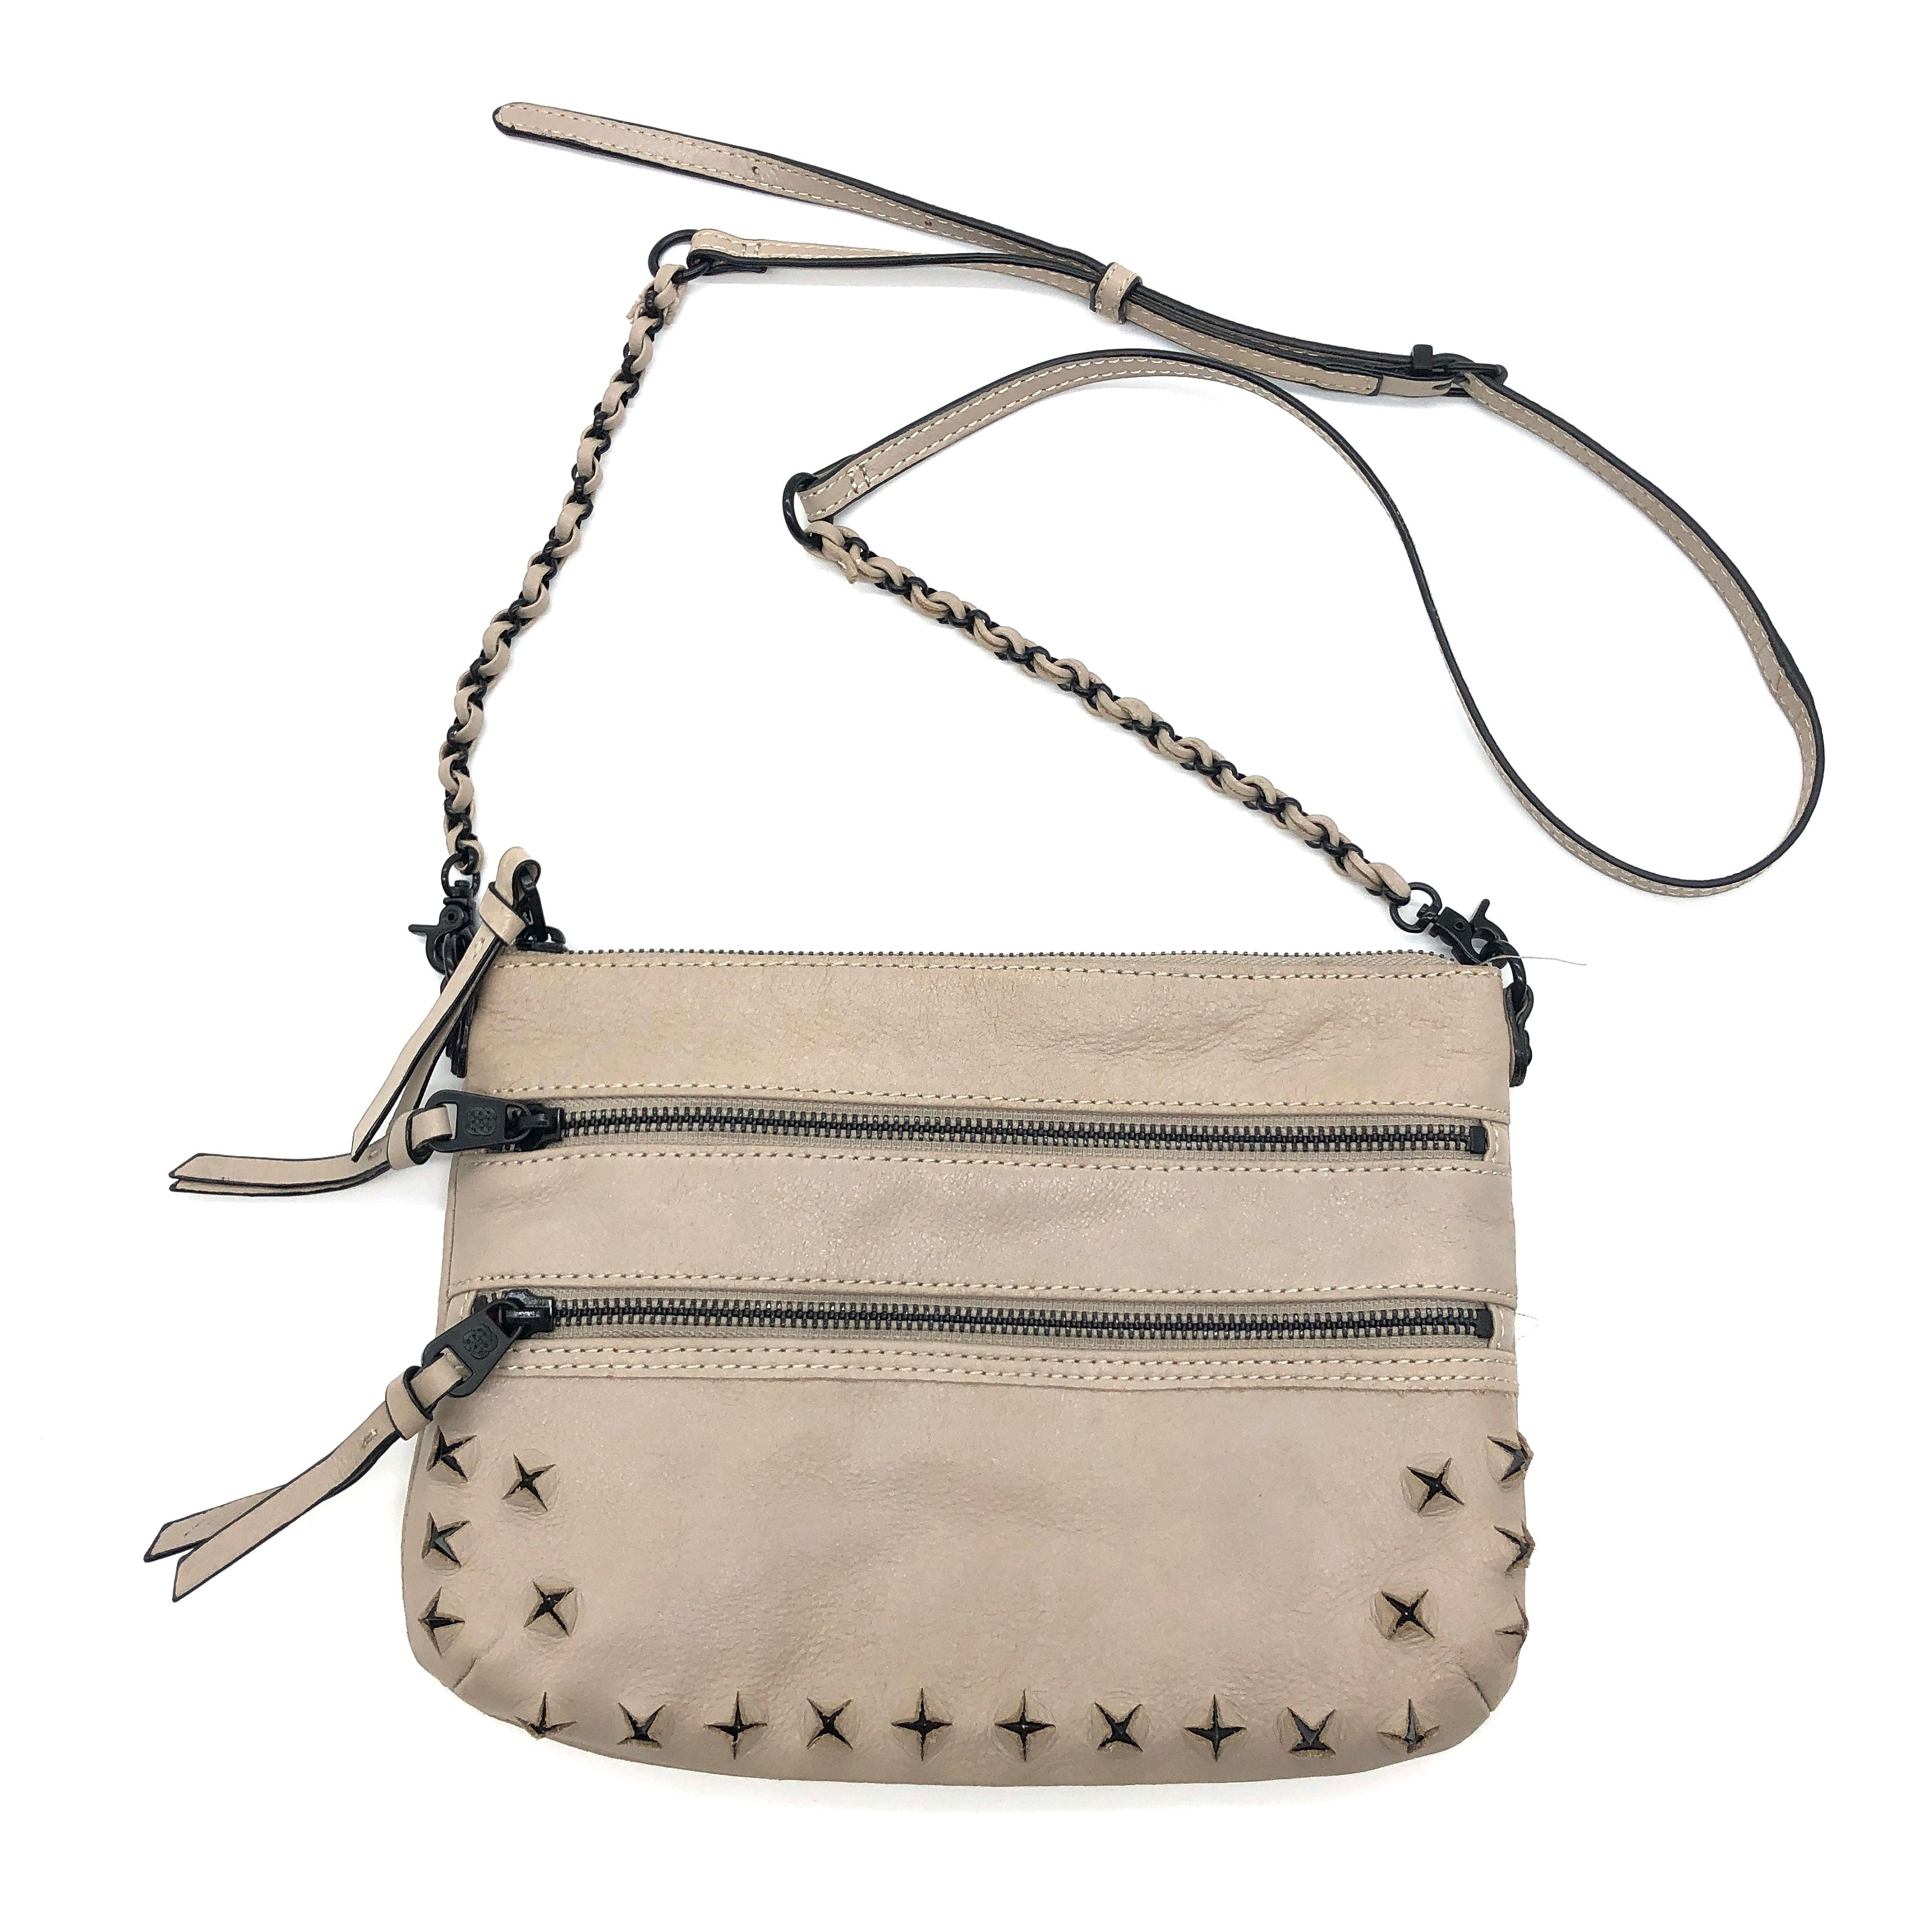 "Primary Photo - BRAND: ELLIOT LUCCA <BR>STYLE: HANDBAG <BR>COLOR: BEIGE <BR>SIZE: SMALL <BR>SKU: 262-262101-2130<BR>AS IS <BR>APPROX 10""X8""X0.5""<BR>"